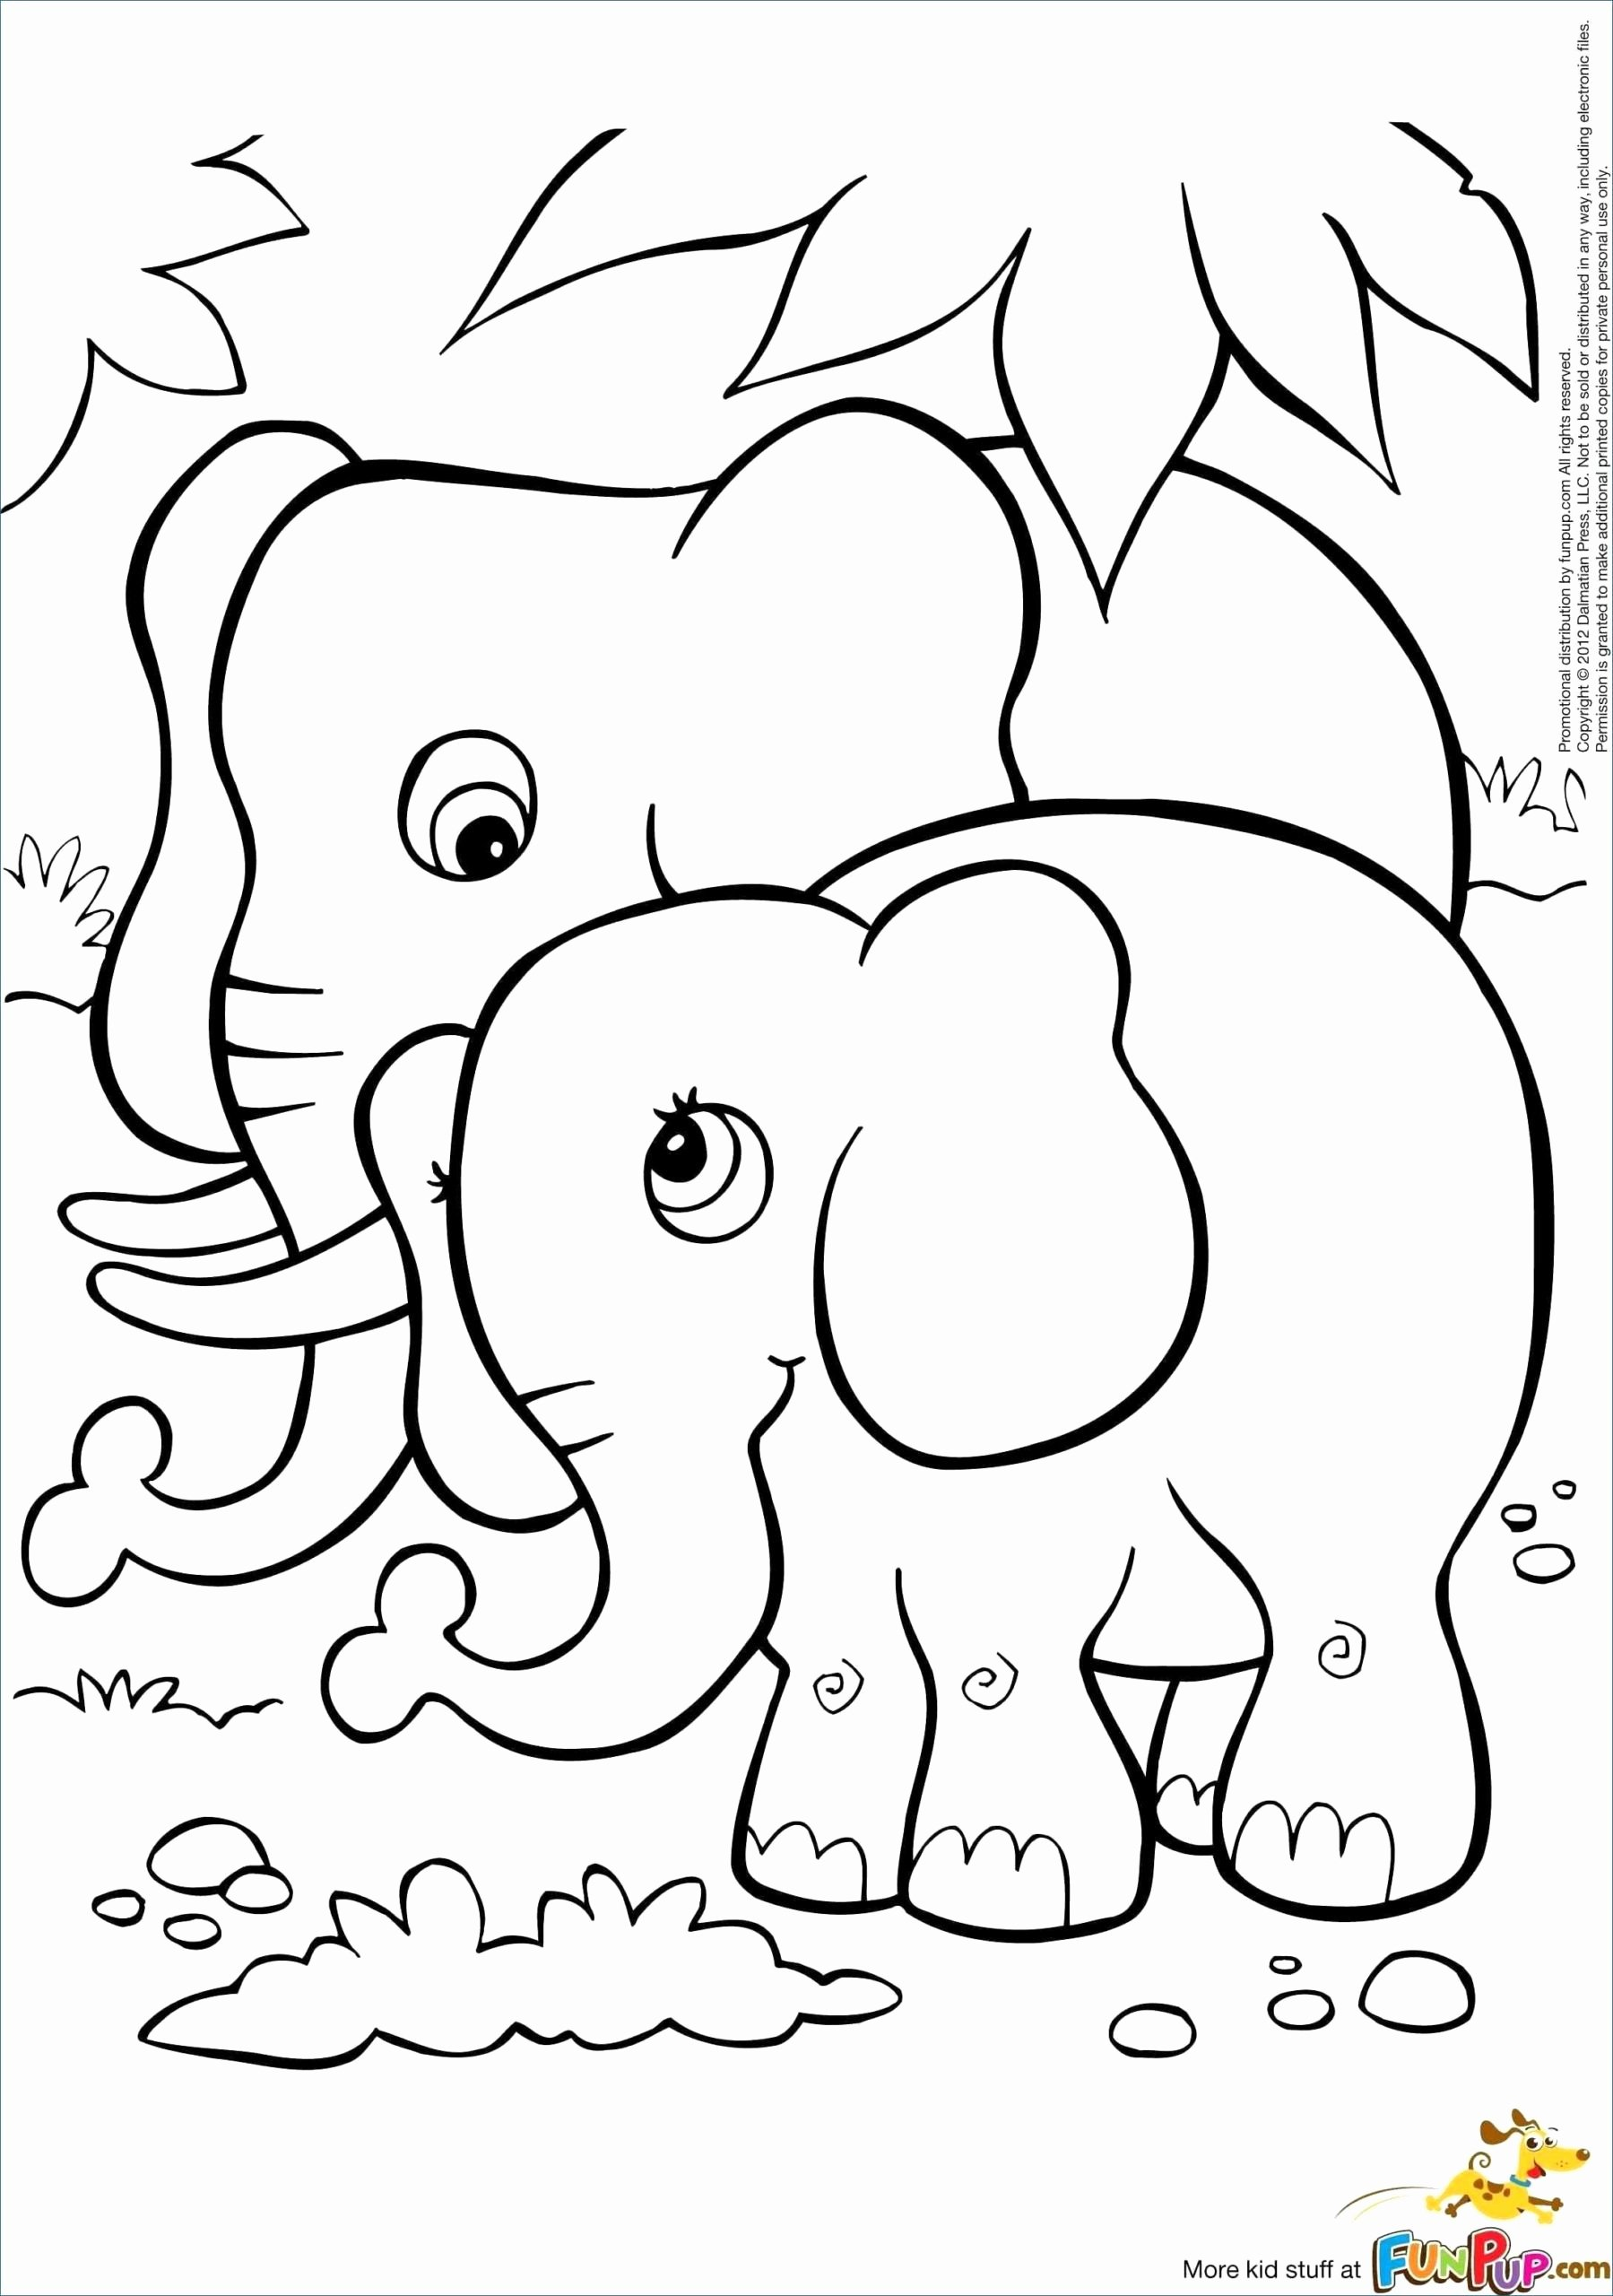 Elephant Worksheets for Preschoolers Lovely Summer Coloring Pages for Kindergarten Preschoolers Best